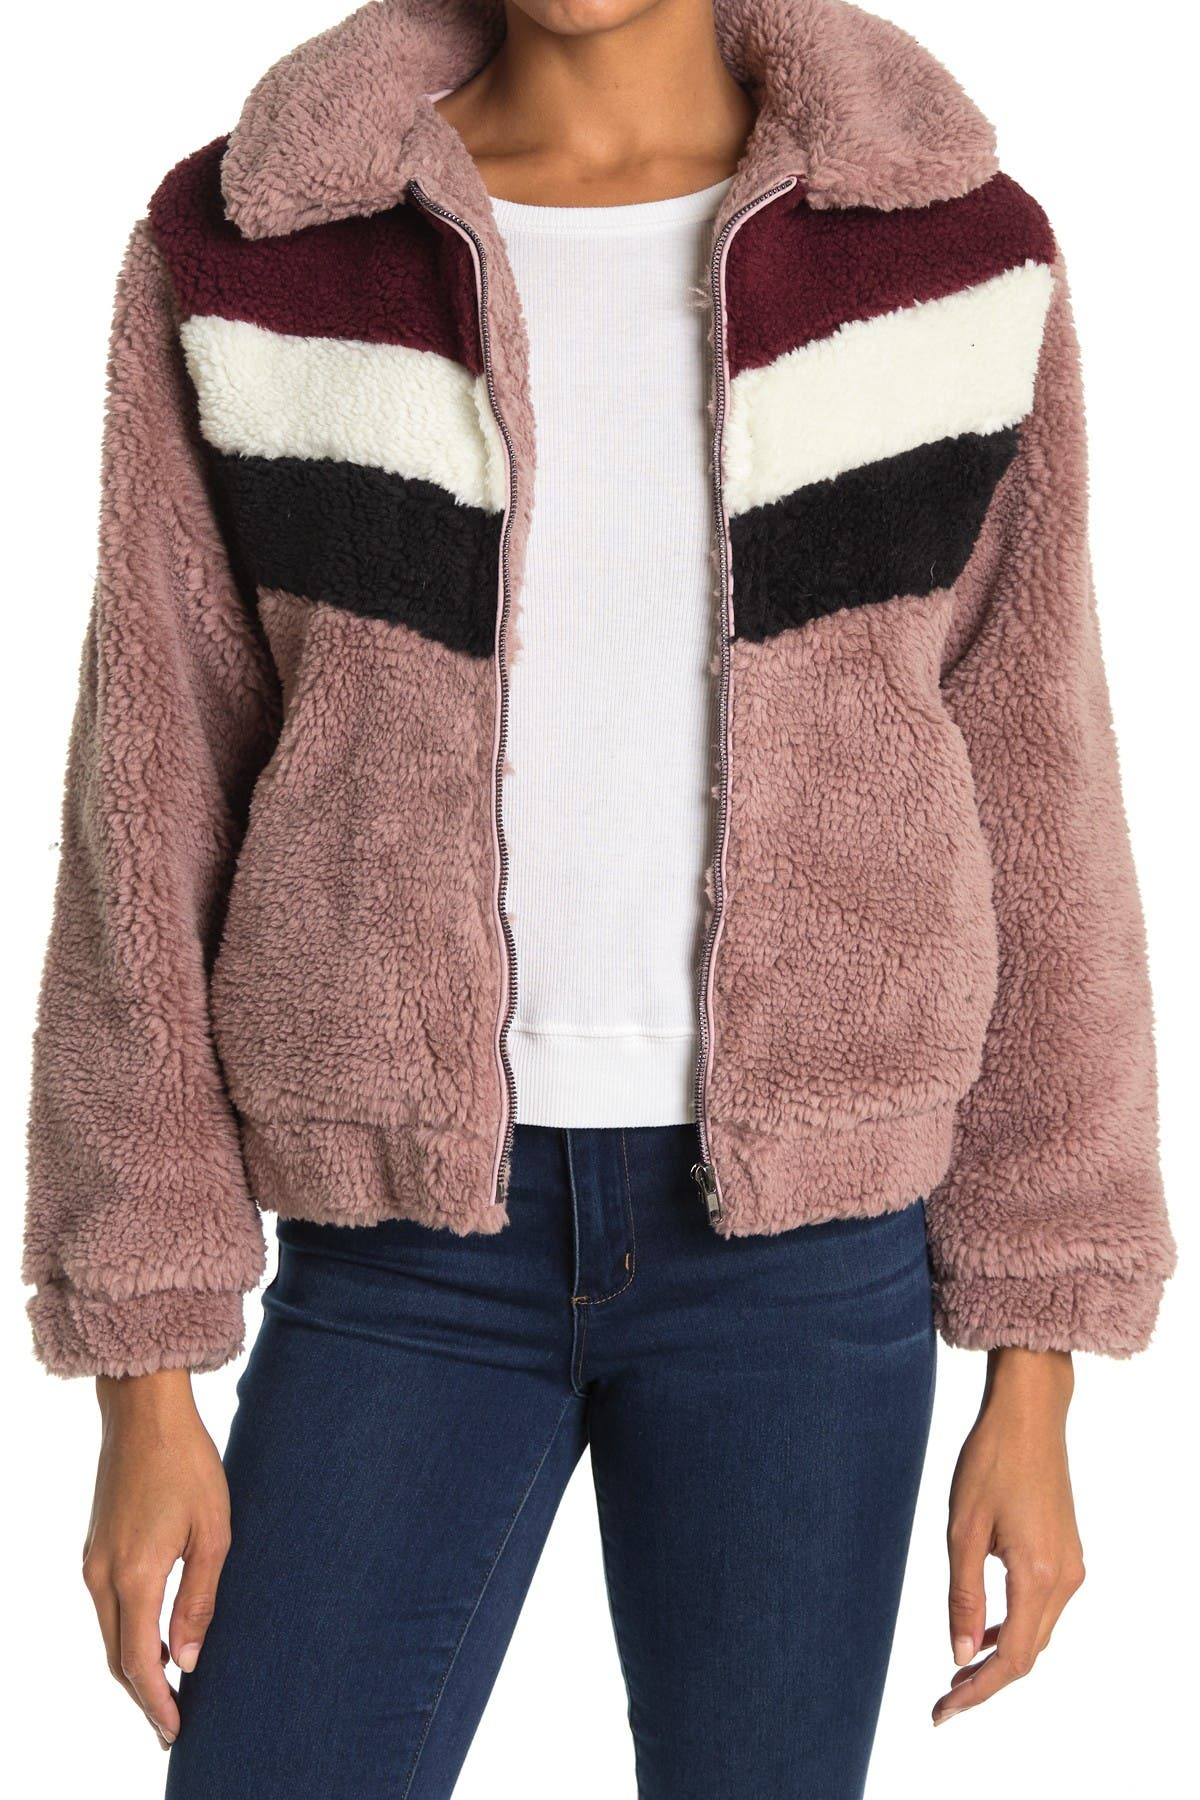 Image of Lush Teddy Colorblock Faux Fur Zip Jacket